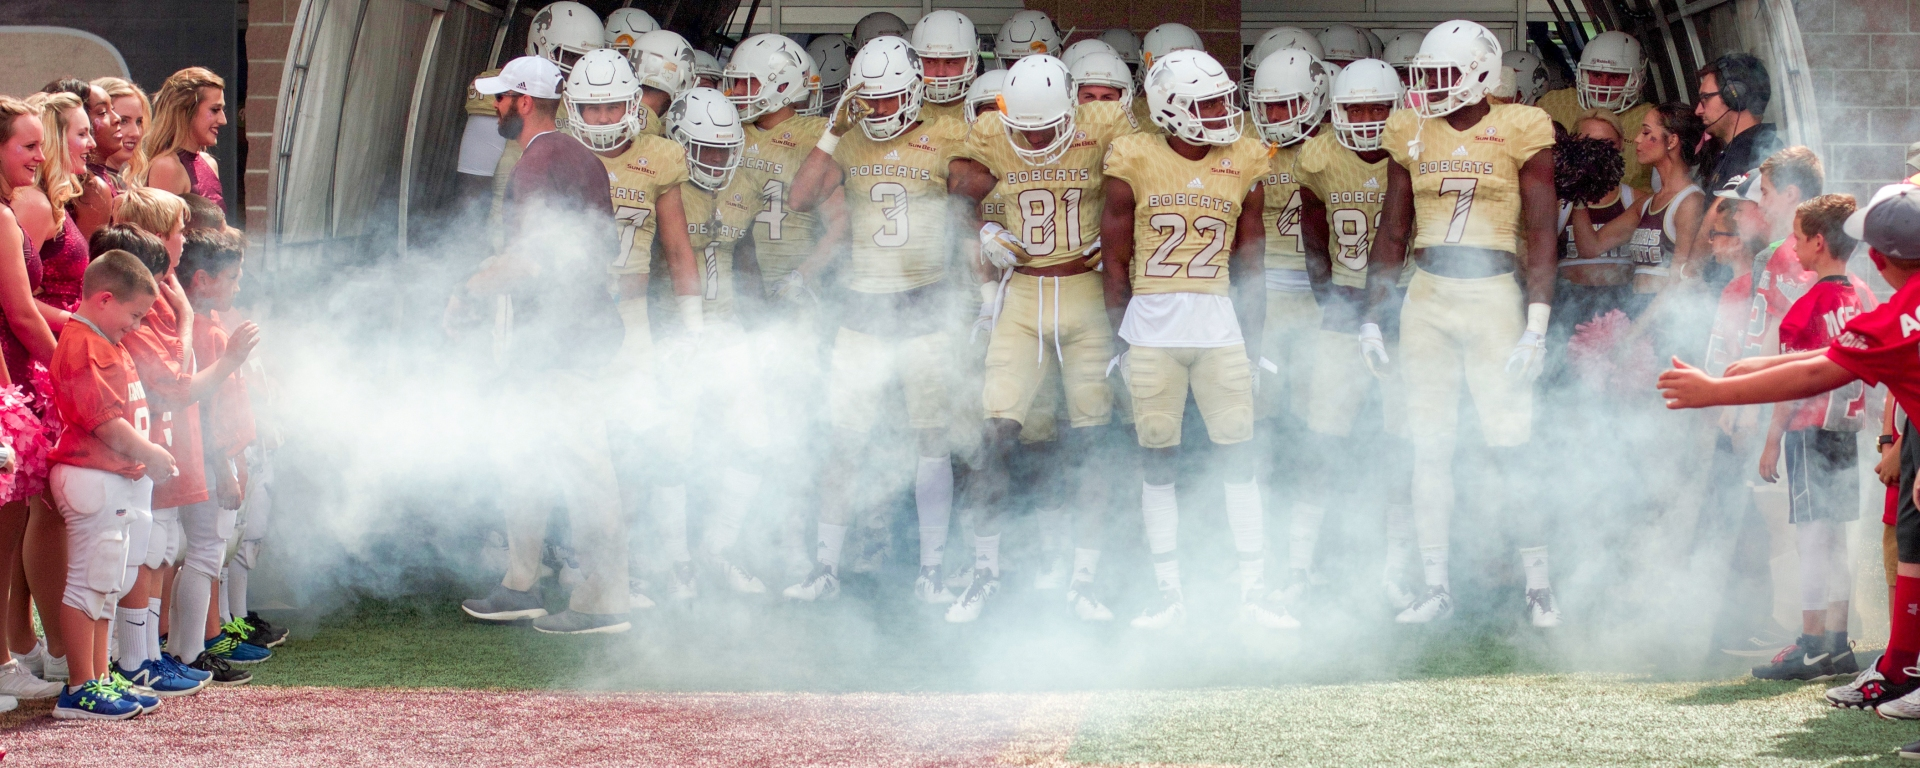 In their bright golden jerseys, the Texas State Bobcat Football team prepares to rush out of a smoke-filled tunnel to an enthusiastic home crowd. Some players look at each other, others look down, but all have rigid bodies from the tense of the situation, waiting to pour their exuberance onto the field of play.